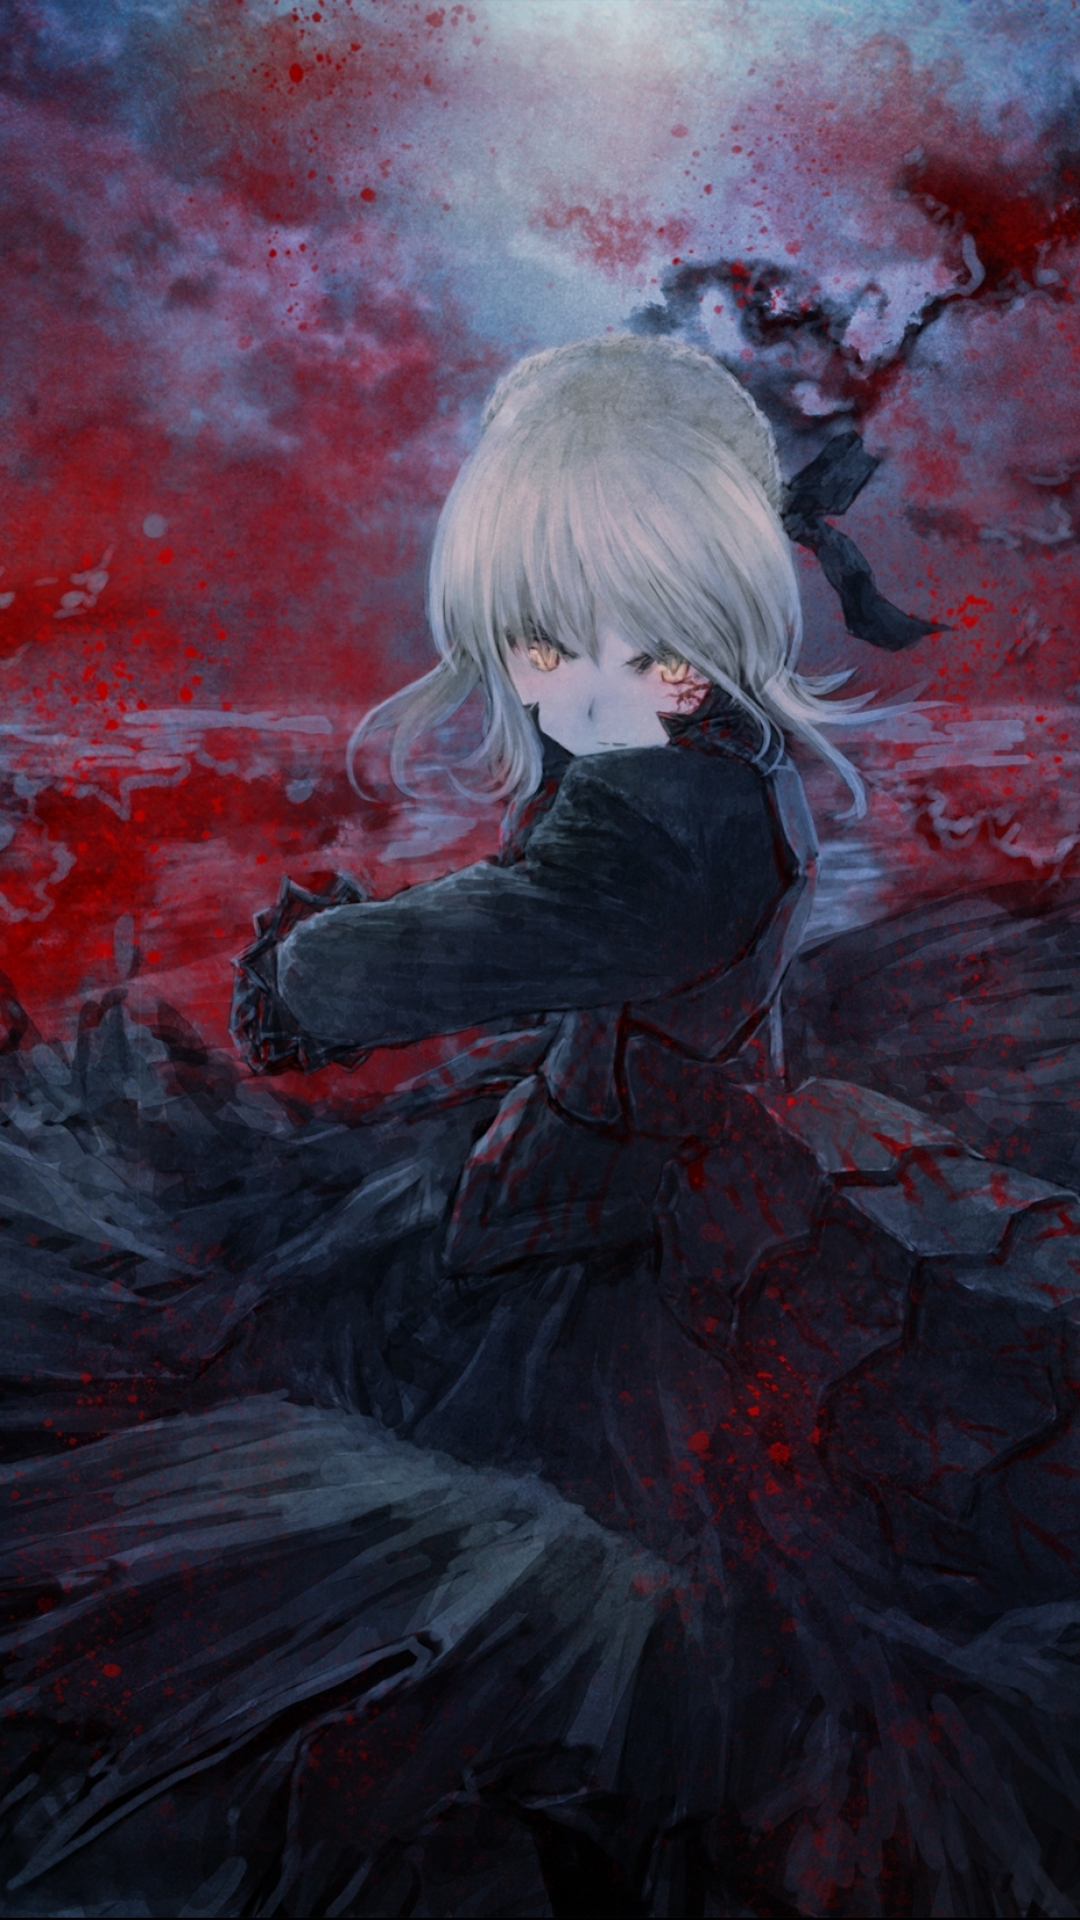 Anime Fate Stay Night 1080x1920 Wallpaper Id 288056 Mobile Abyss